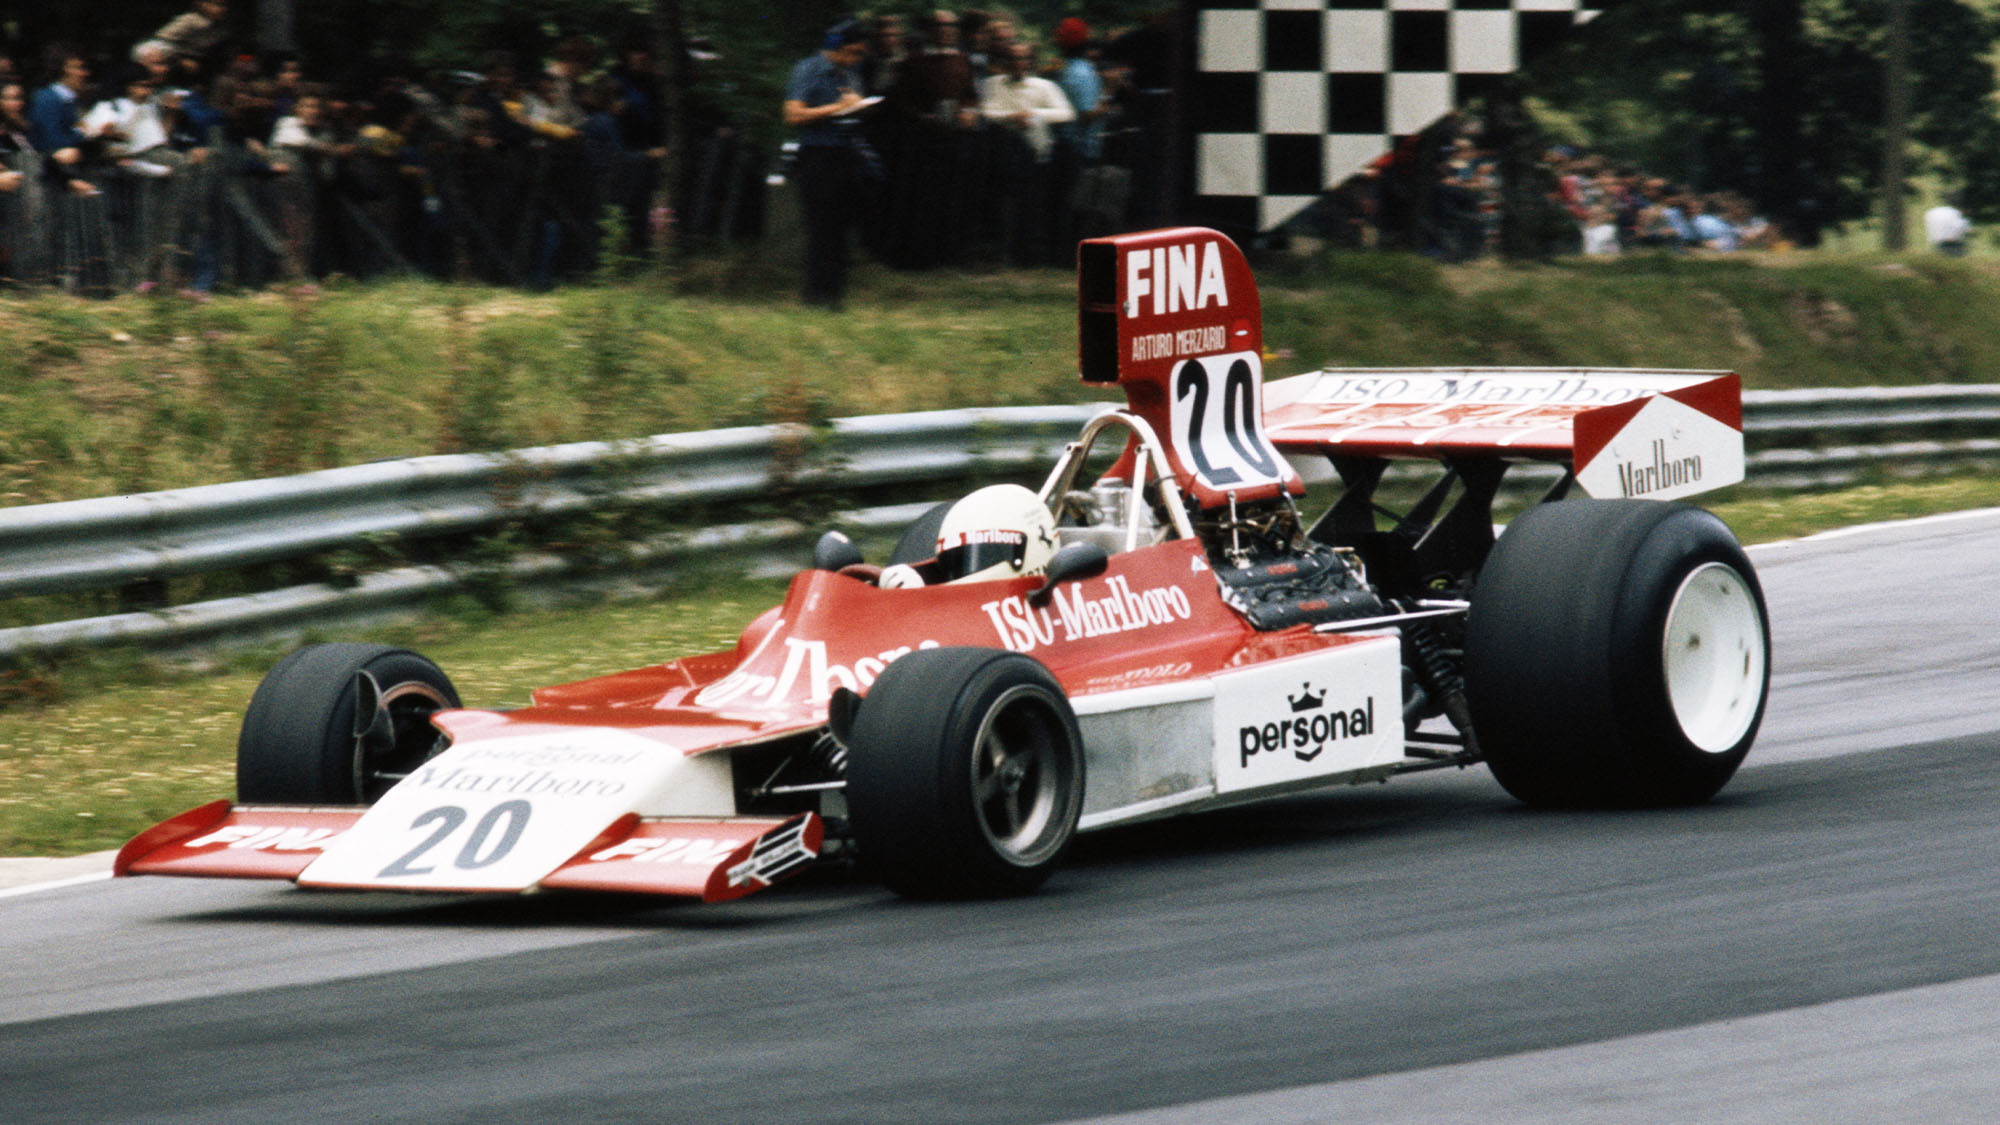 Arturo Merzario drives the #20 Frank Williams Racing Cars Marlboro Iso Ford FW during the British Grand Prix on 20 July 1974 at the Brands Hatch circuit in Fawkham, Great Britain. (Photo by Getty Images)